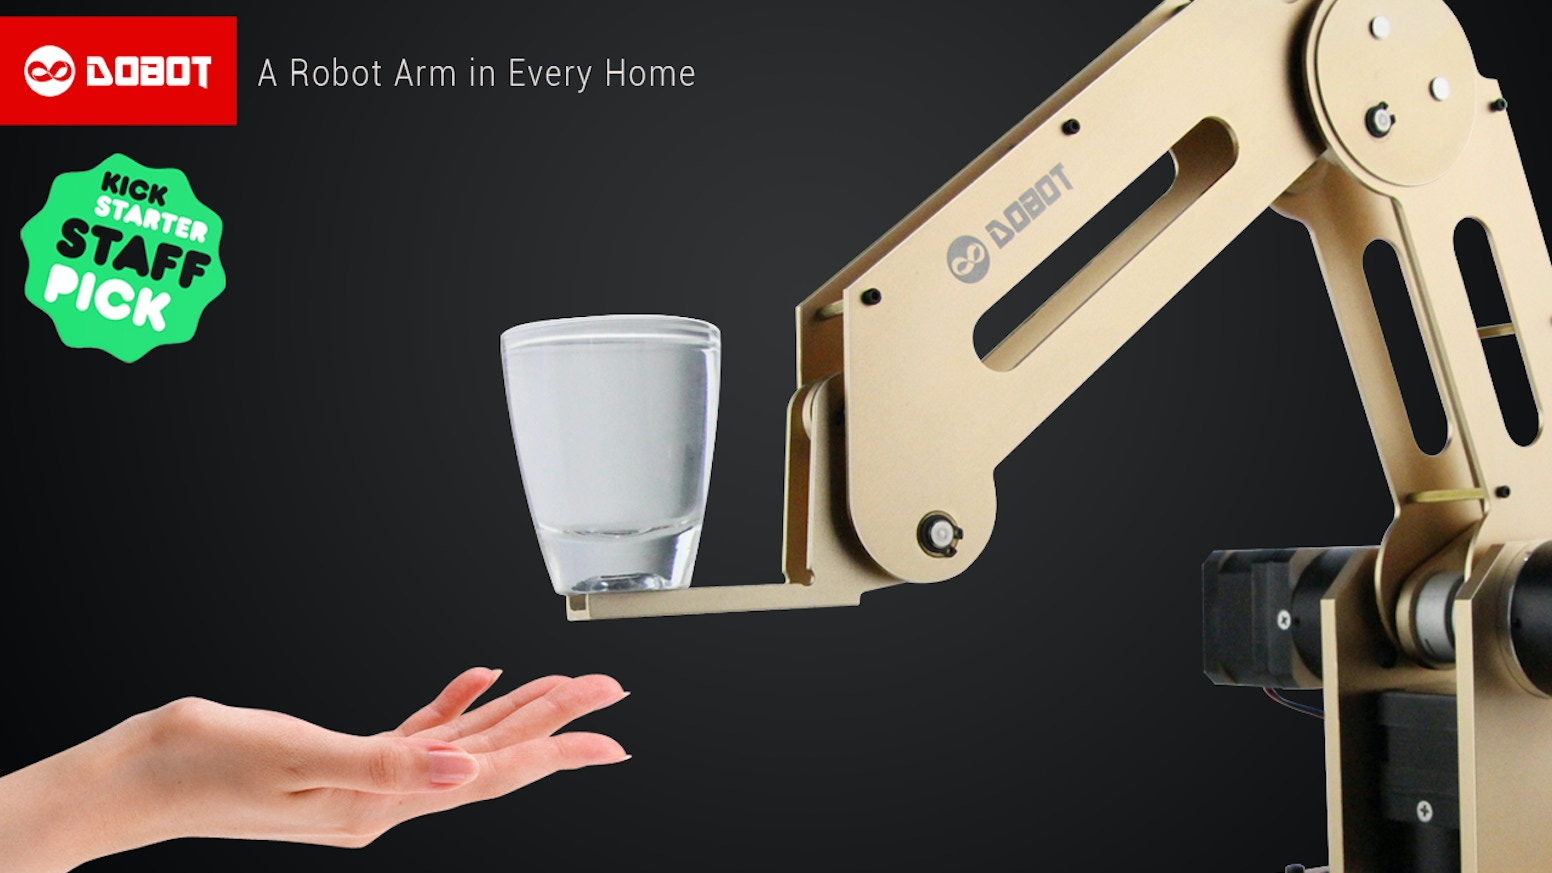 For DESKTOP. Arduino-based, 4-axis parallel-mechanism Robot Arm, 0.2mm precision! Bring industrial robot to everyone. Effective tool.